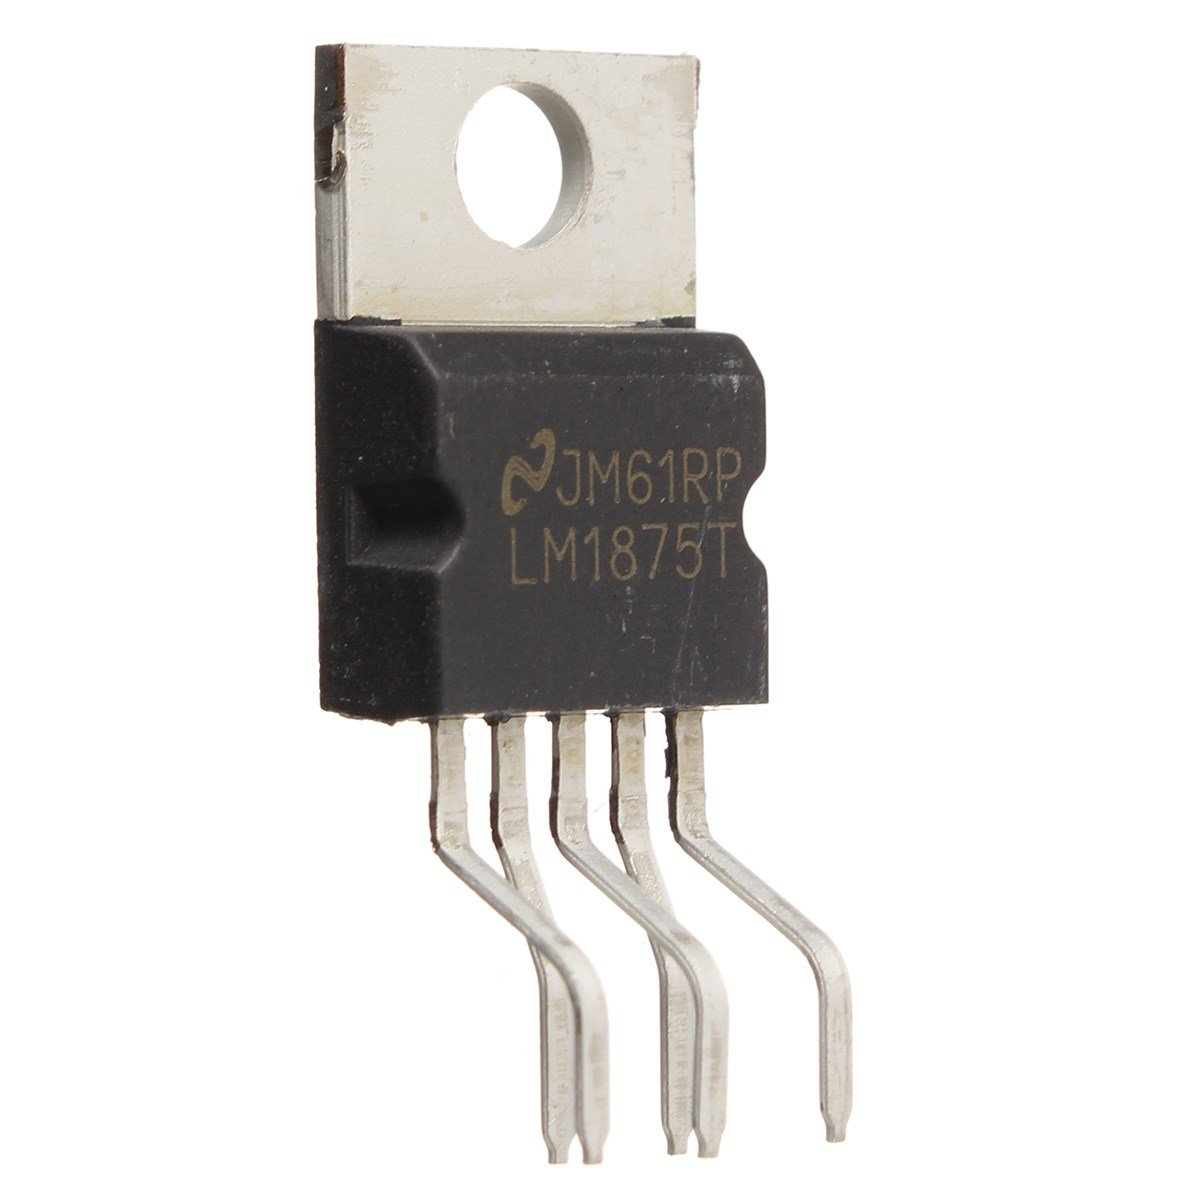 Quickbuying 10pcs Lm1875t To220 5 Lm1875 20w Audio Amplifier Using Power Integrated Circuits Computers Accessories